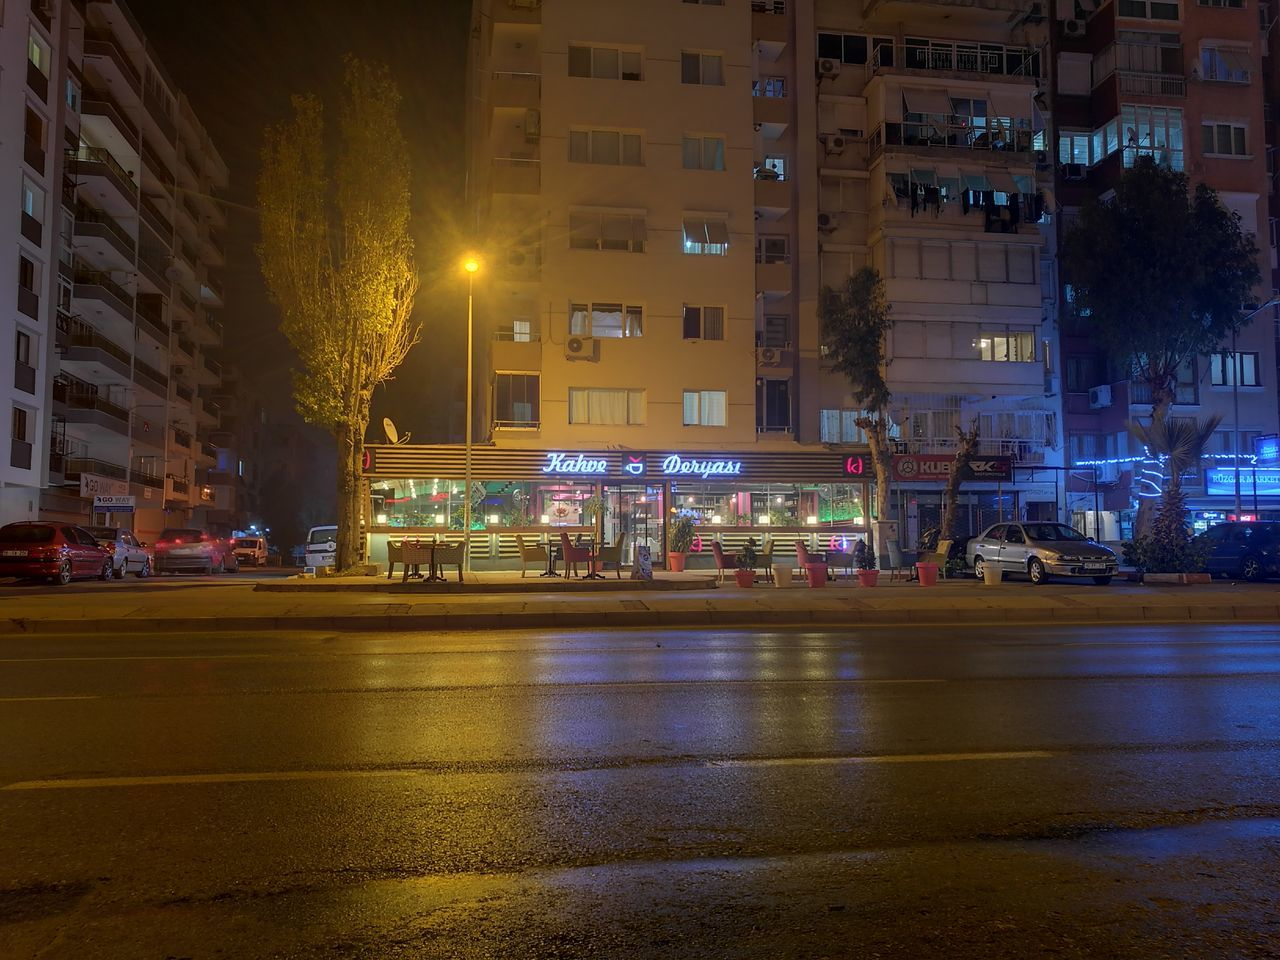 illuminated, night, building exterior, architecture, transportation, street, built structure, city, land vehicle, mode of transport, car, road, street light, outdoors, tree, real people, cityscape, sky